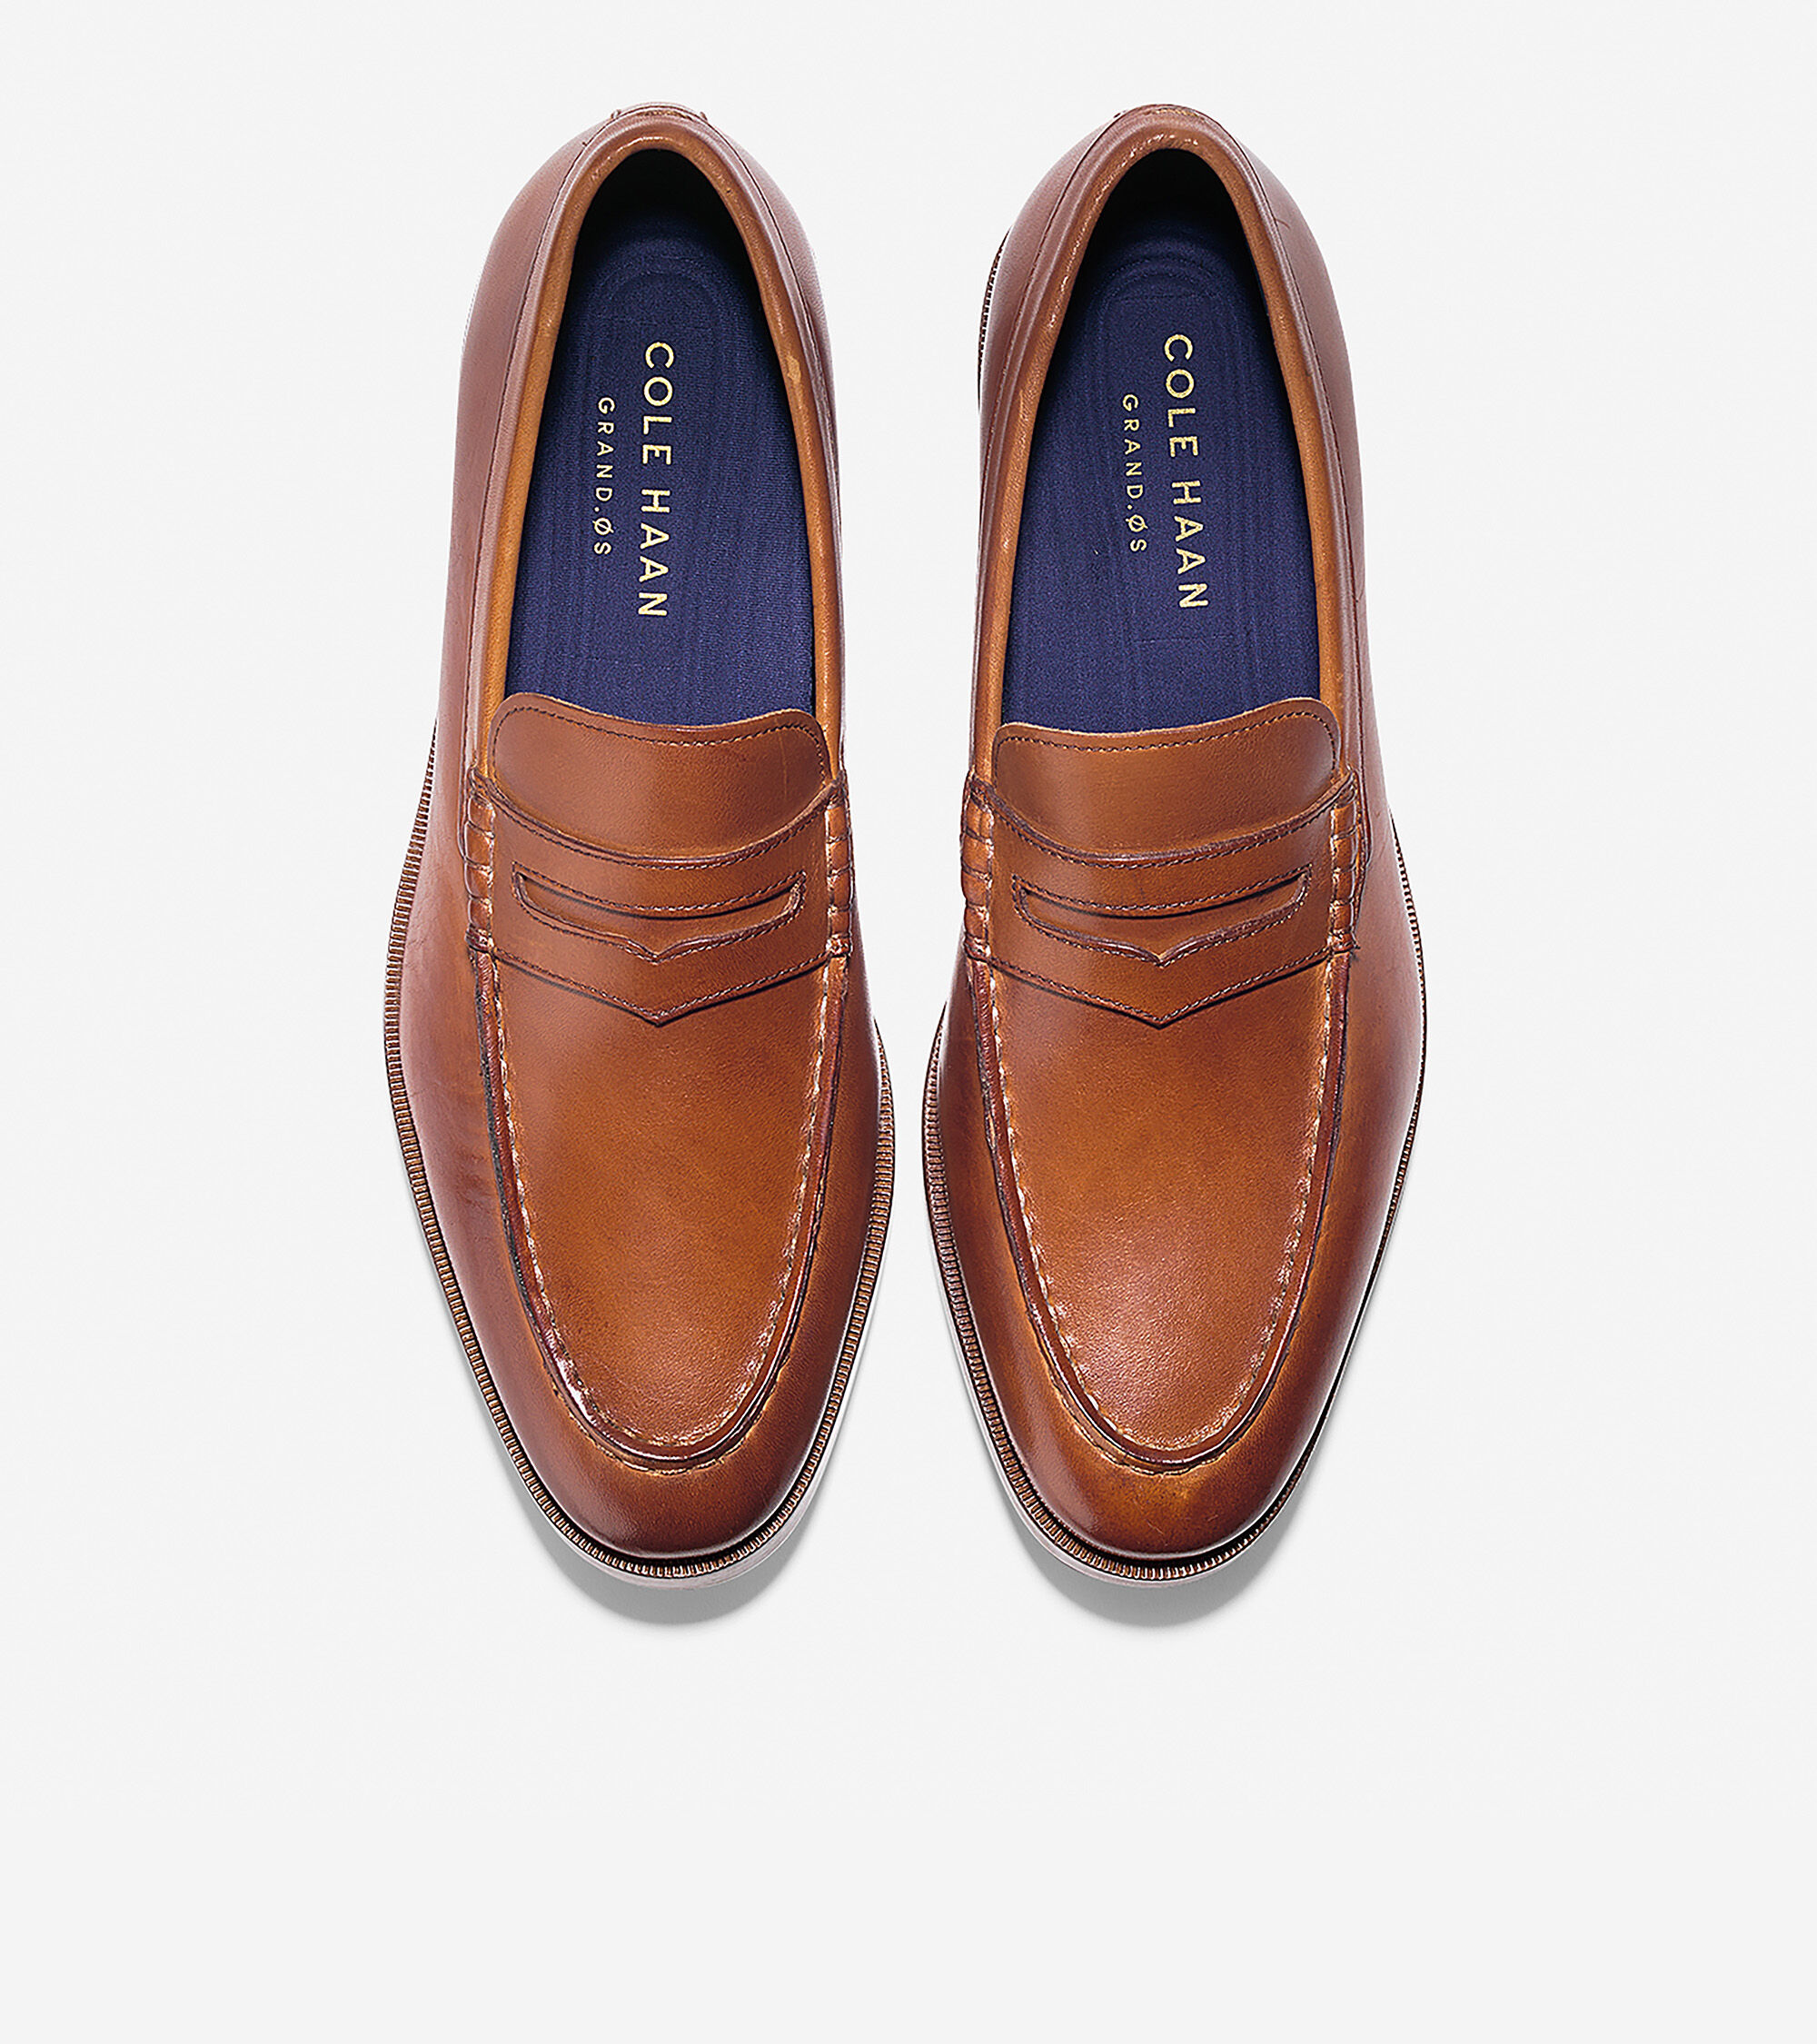 Men's Hamilton Grand Penny Loafers in British Tan | Cole Haan